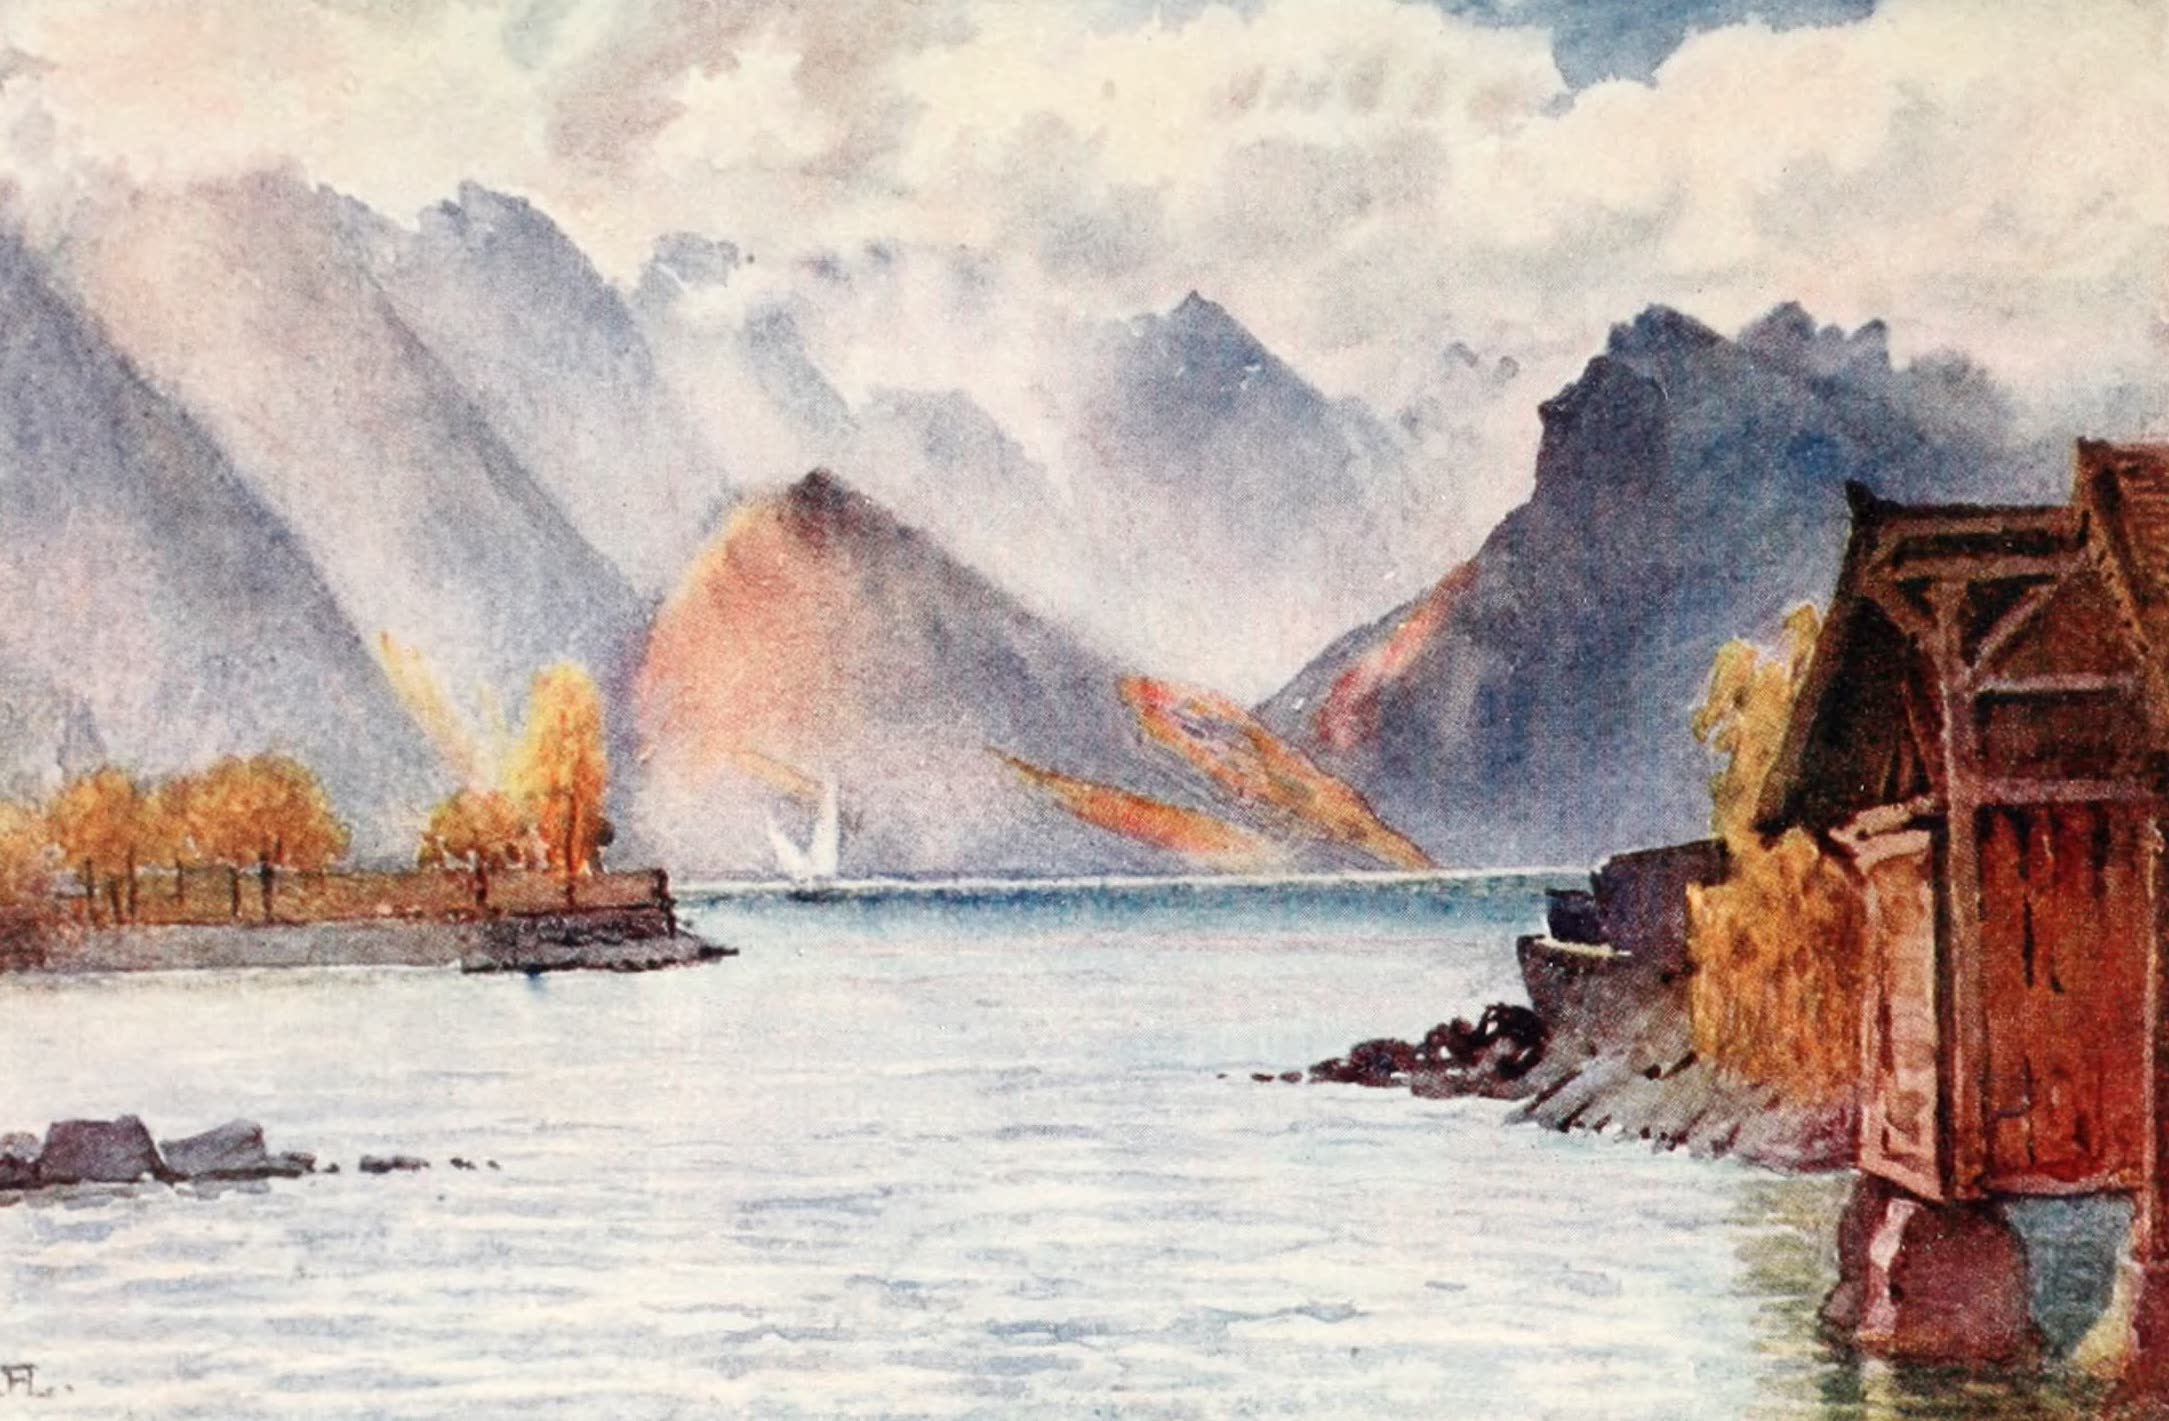 Montreux, Painted and Described - The Savoy Alps from the Bathing-place at Clarens (1908)